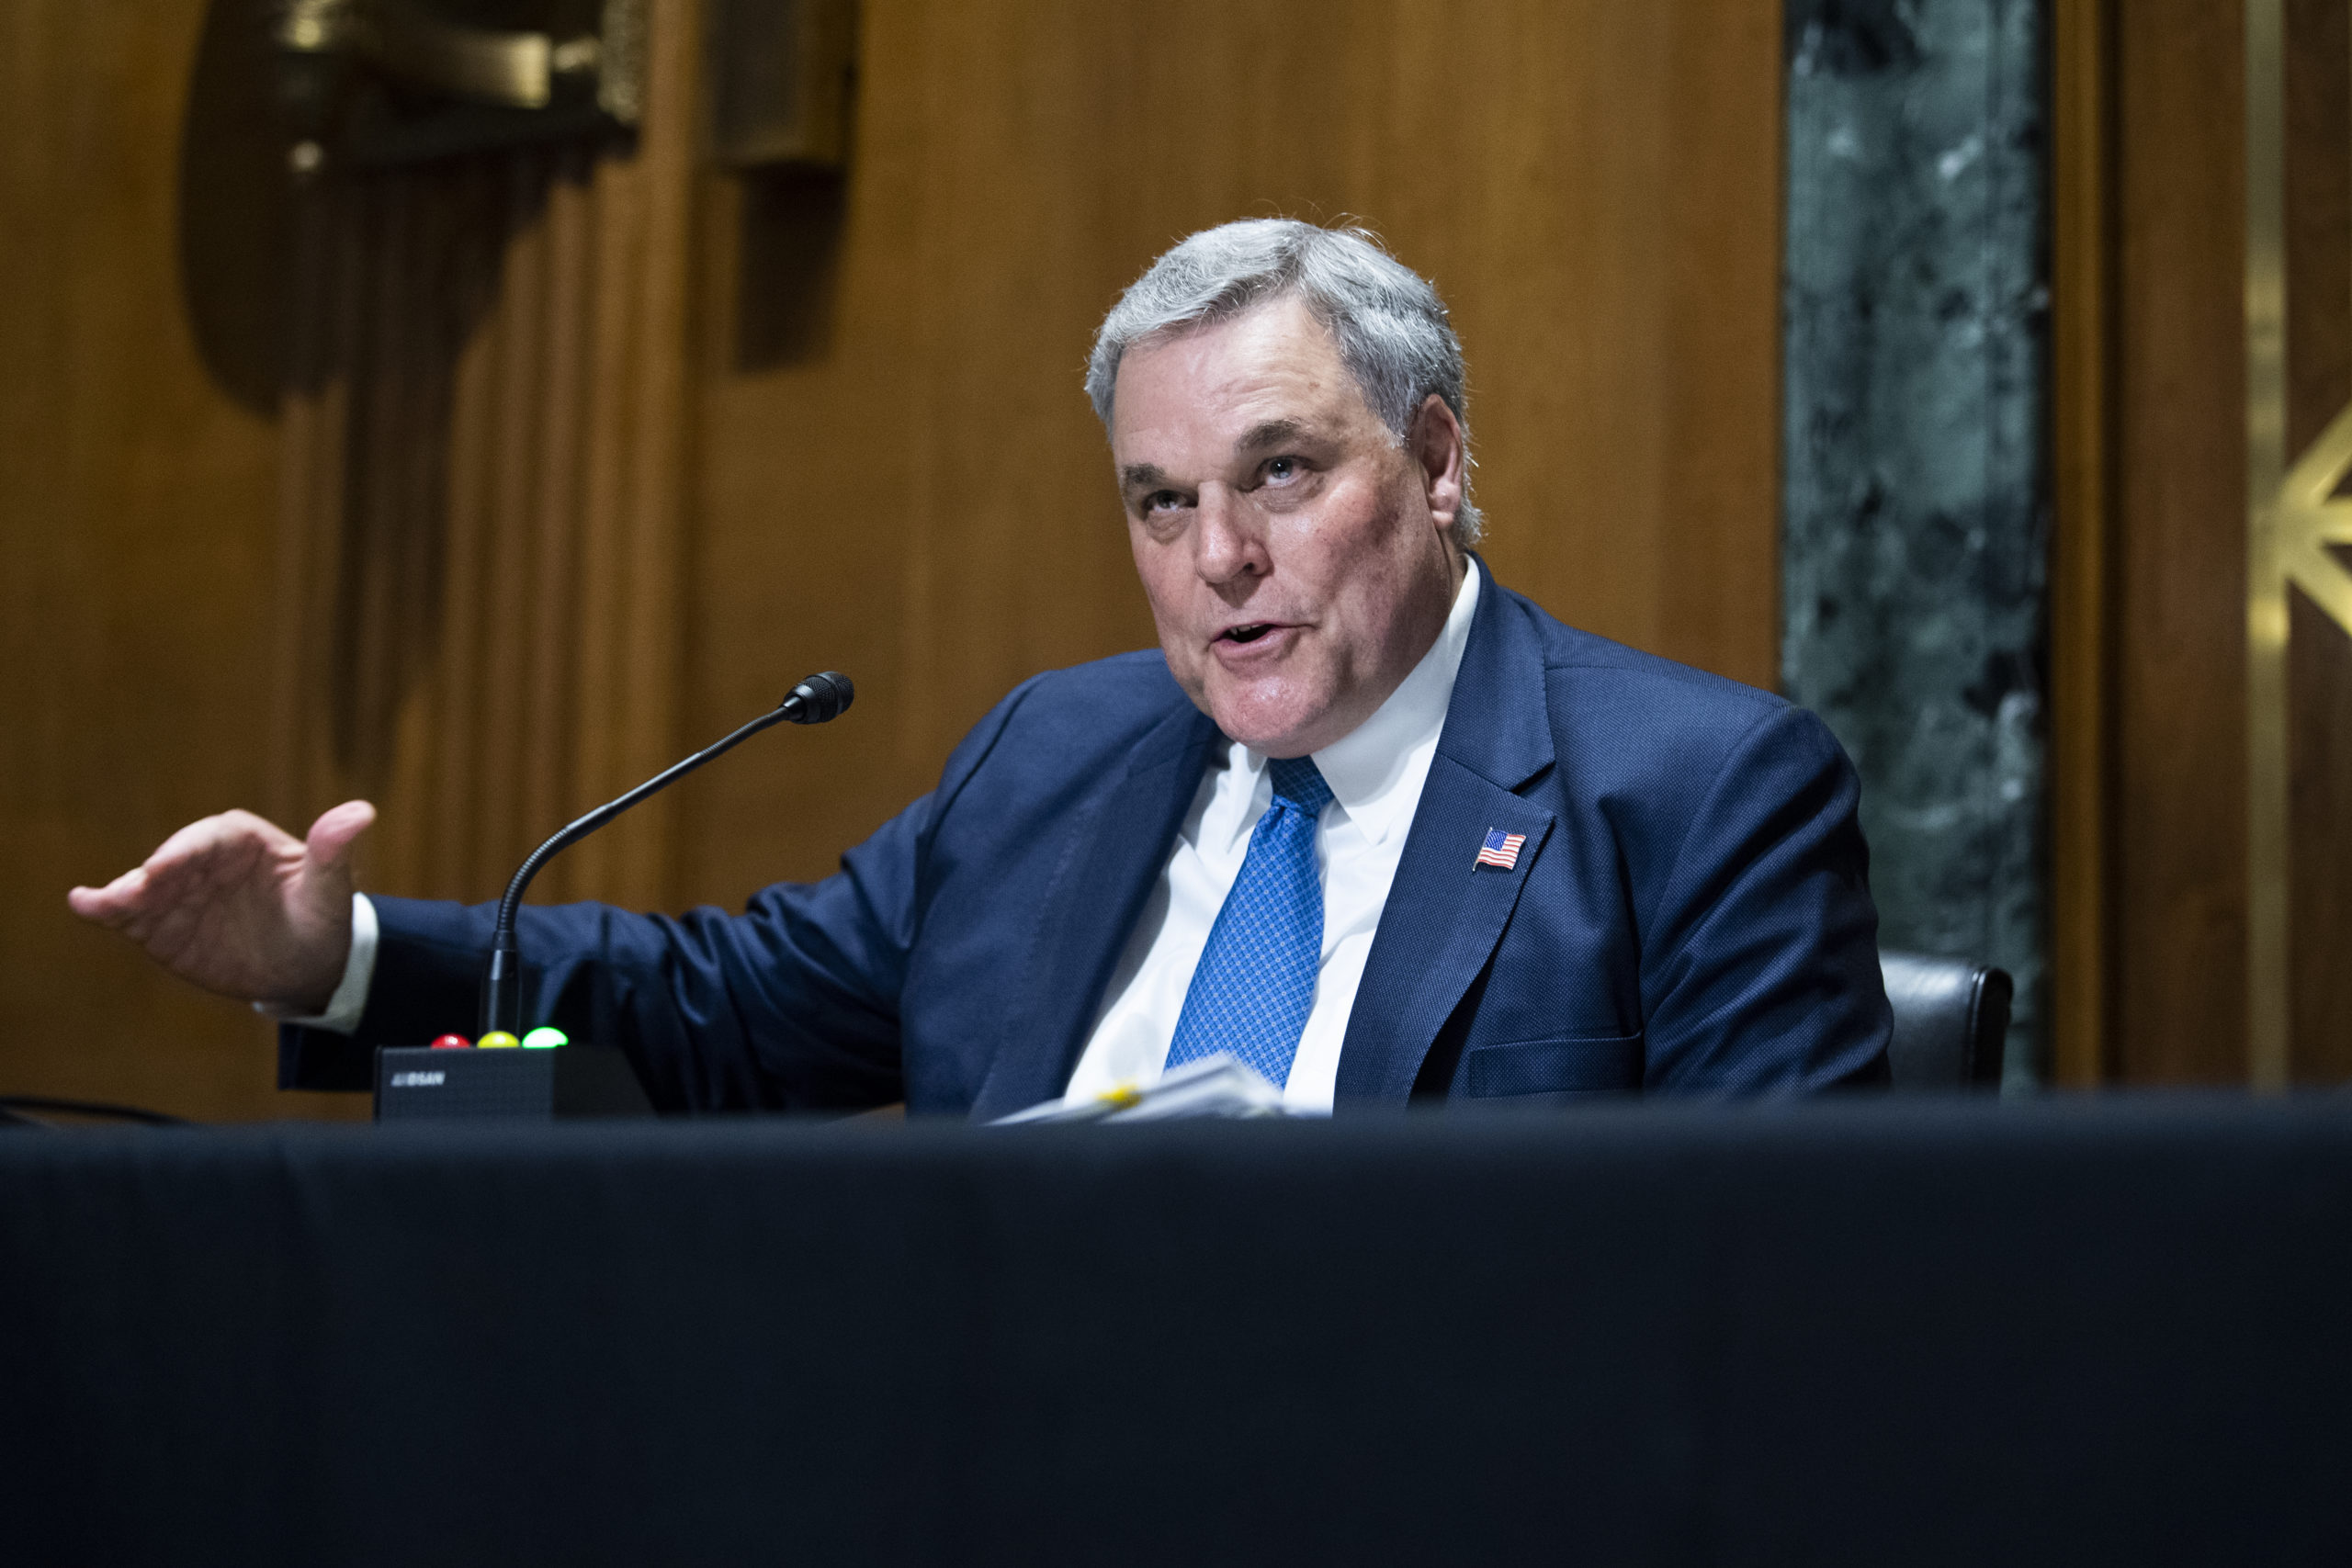 Internal Revenue Service (IRS) Commissioner Charles Rettig testifies during a Senate Finance Committee hearing June 8, 2021 on Capitol Hill in Washington, D.C. (Photo by Tom Williams-Pool/Getty Images)